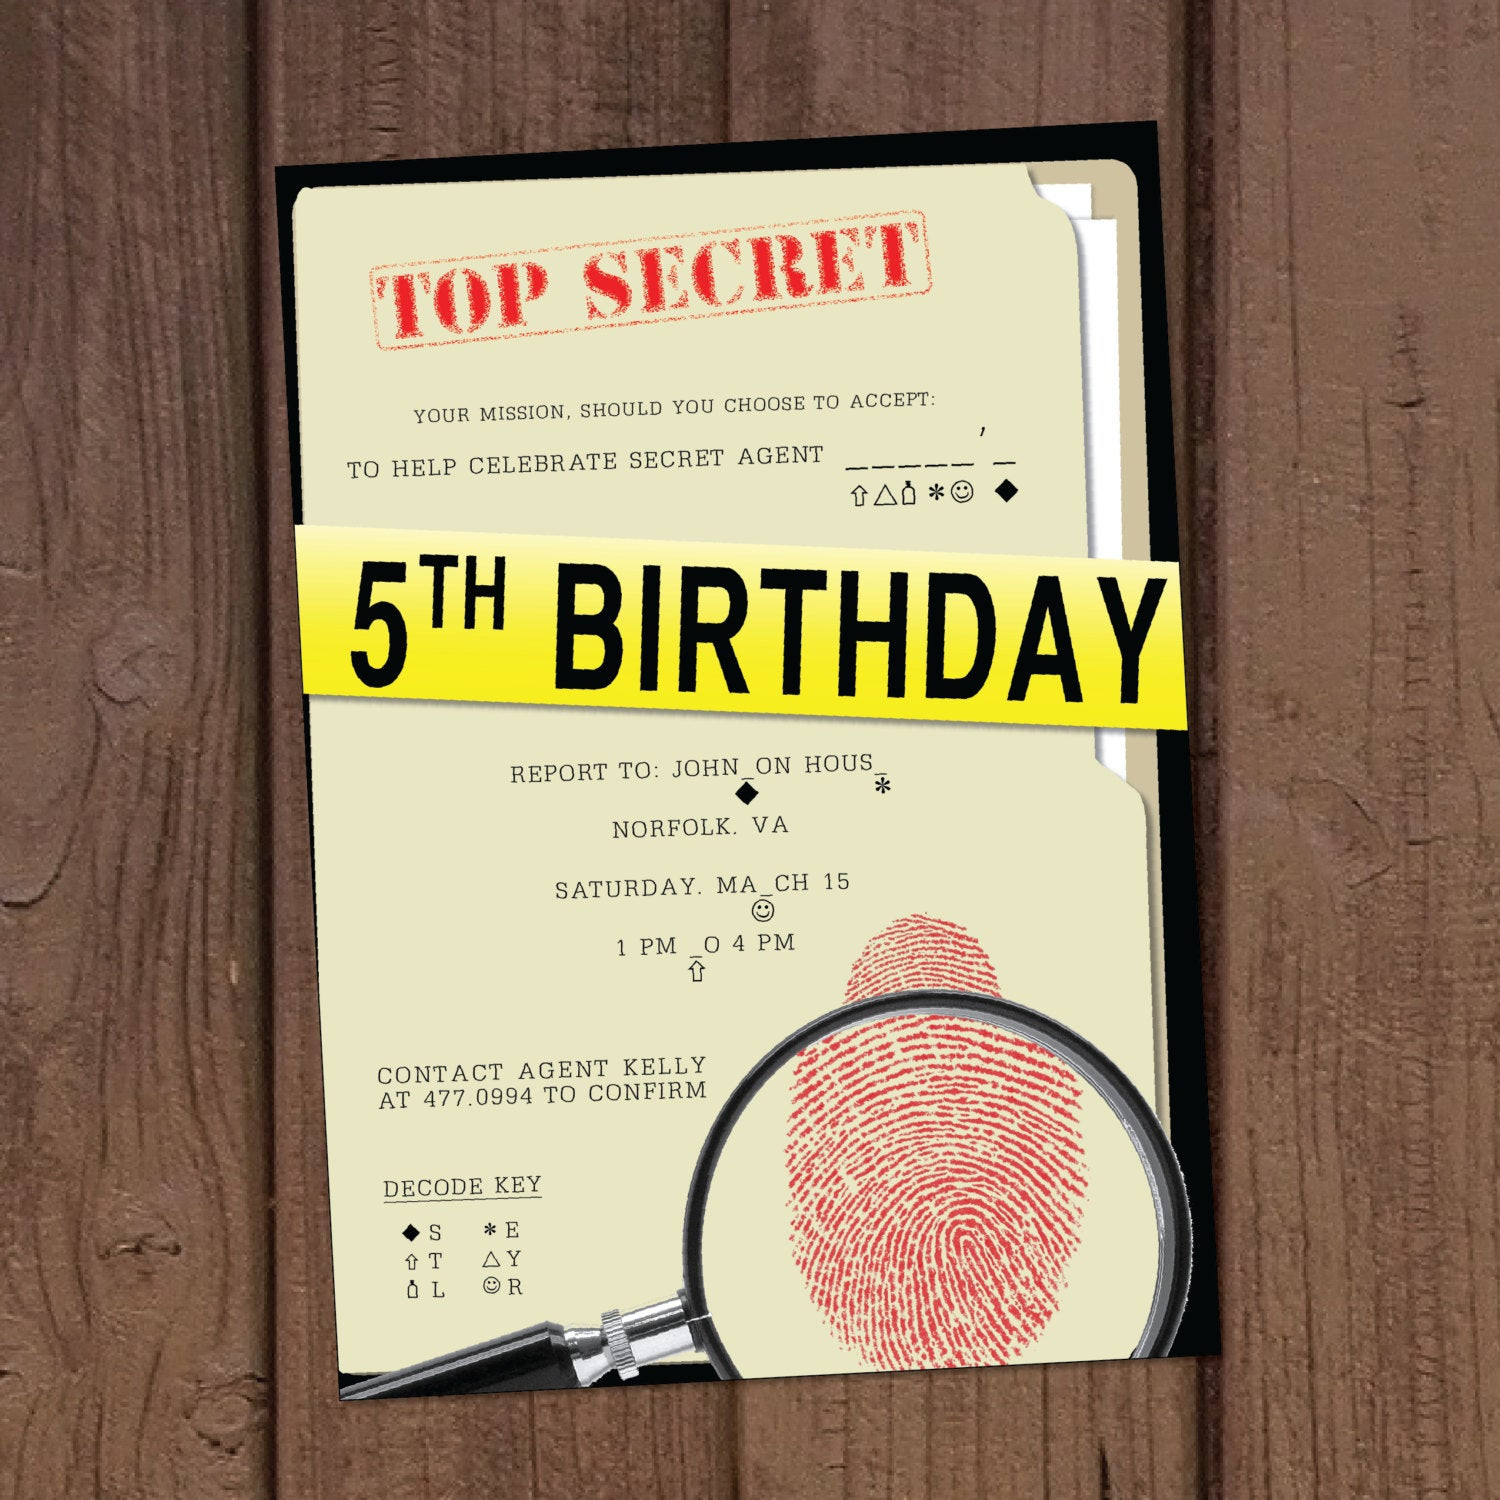 Best ideas about Spy Birthday Party . Save or Pin Secret Agent Spy Birthday Party Invitation Now.